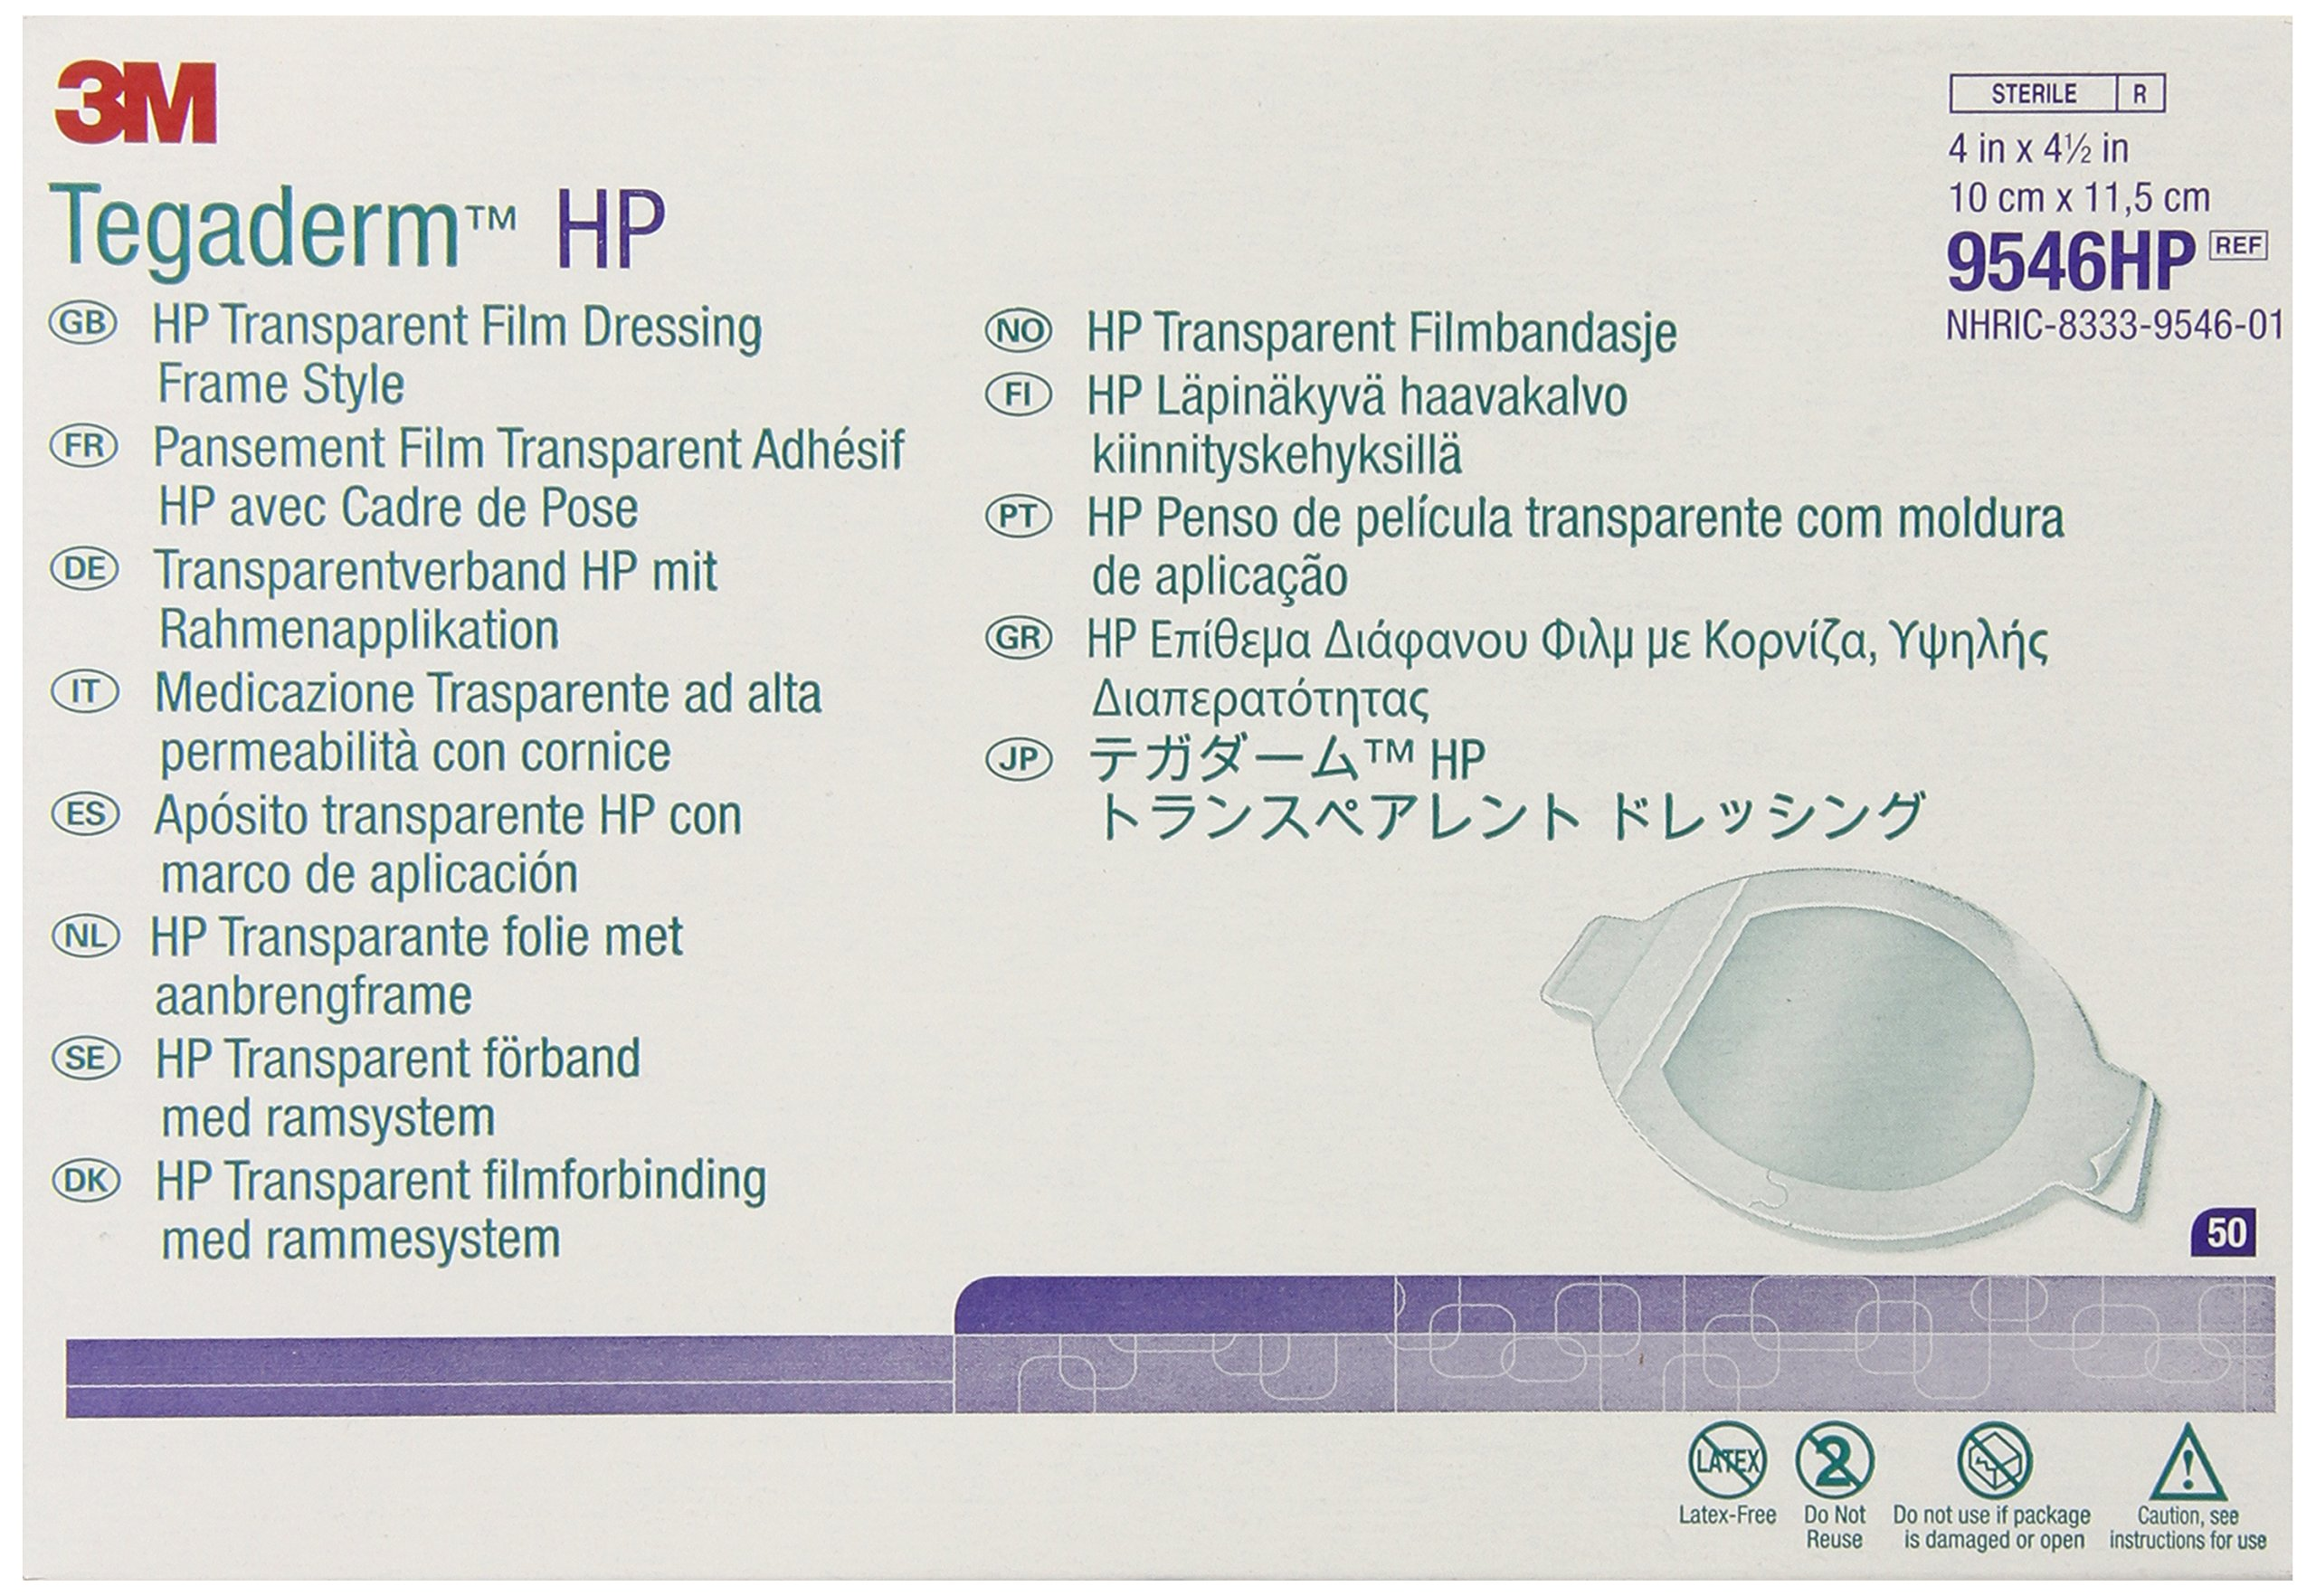 3M Tegaderm HP Transparent Film Dressing Frame Style 9546HP, 50 Pads (Pack of 4) by 3M